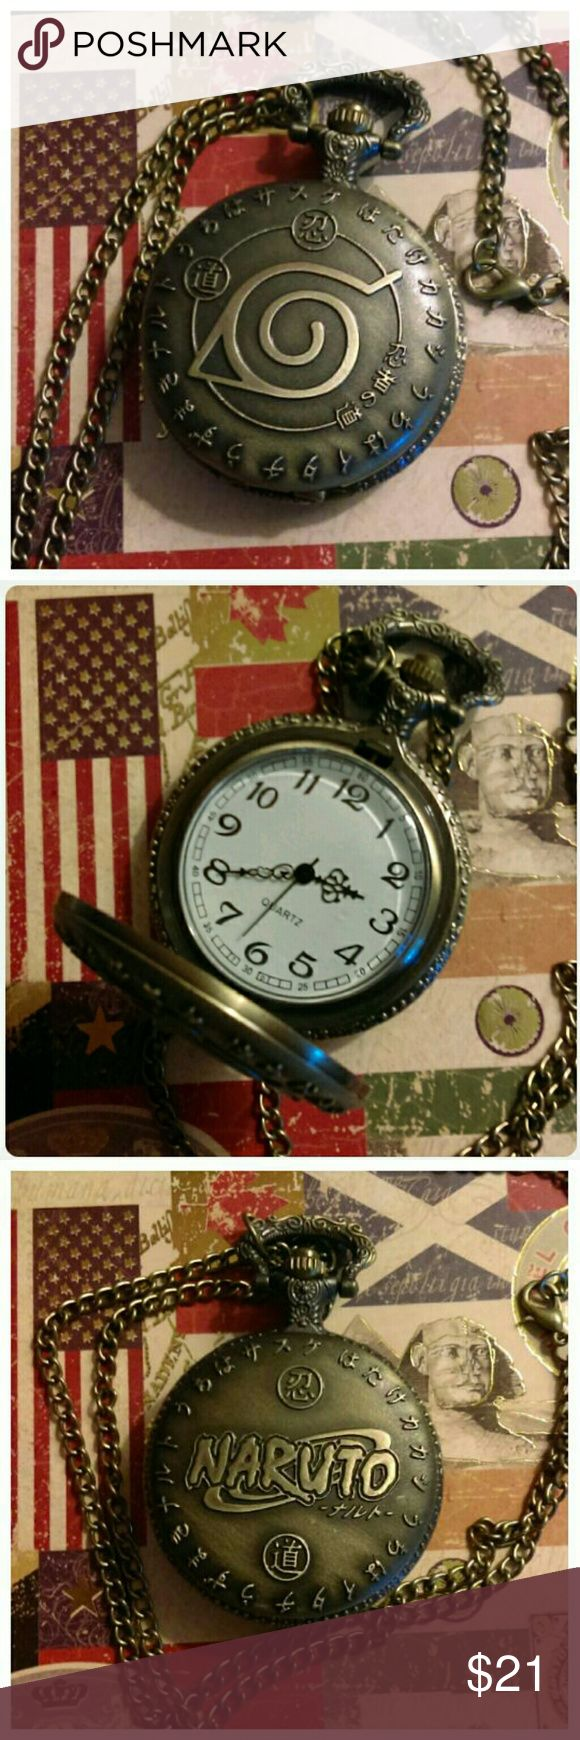 Naruto Anime pocket watch Gorgeous Naruto Anime antiqued brass finish pocketwatch. I love this design! Comes in black velvet pouch with spare battery. Free silver heart earrings! Accessories Watches